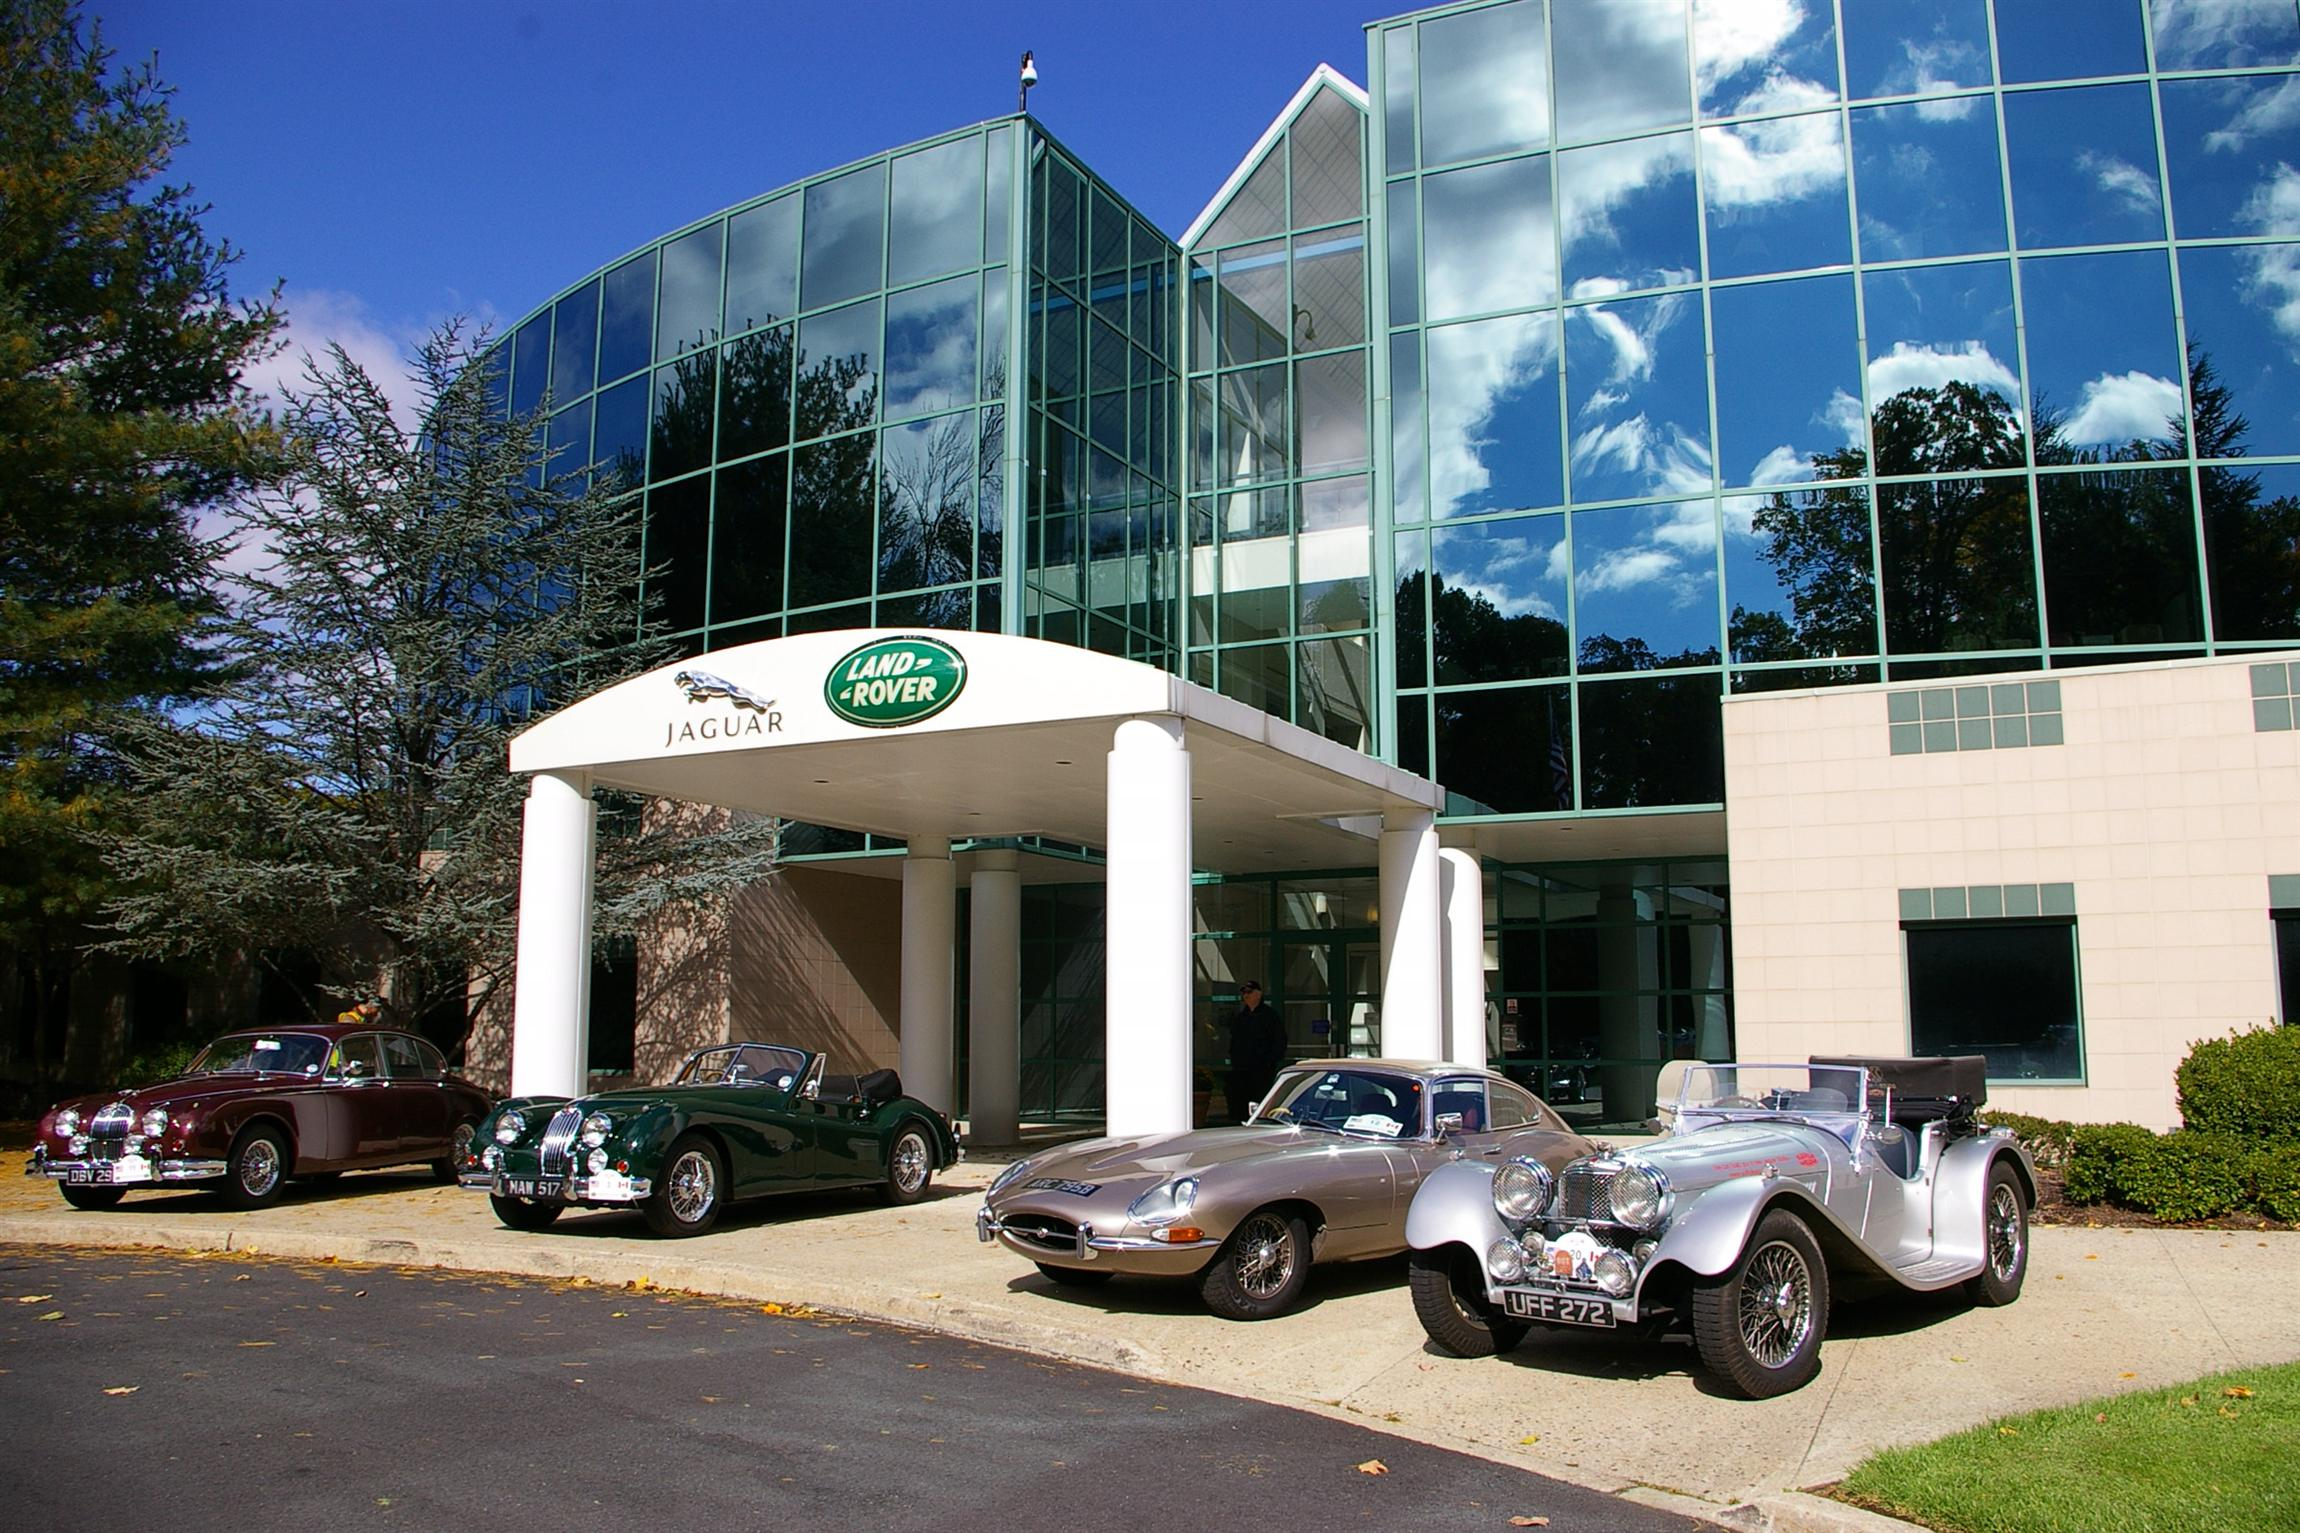 Jaguar north america headquarters